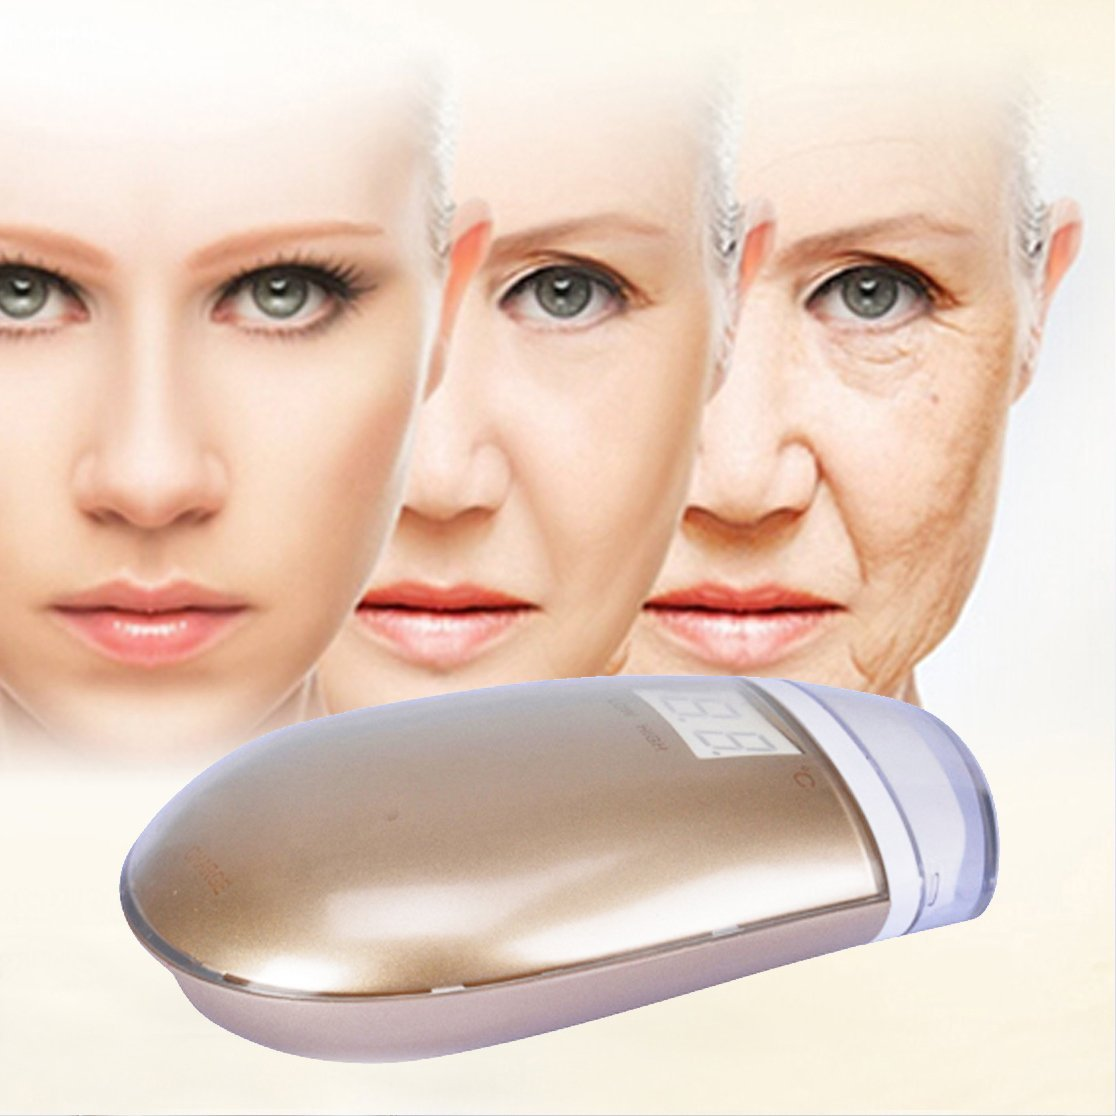 Подробнее о Radiofrequency Face Lift Beauty Wrinkle Remover Anti-Aging Radiofrequency Skin Tightening Beauty and Body Weight Loss device calmini ss6003 suzuki samurai3 body lift